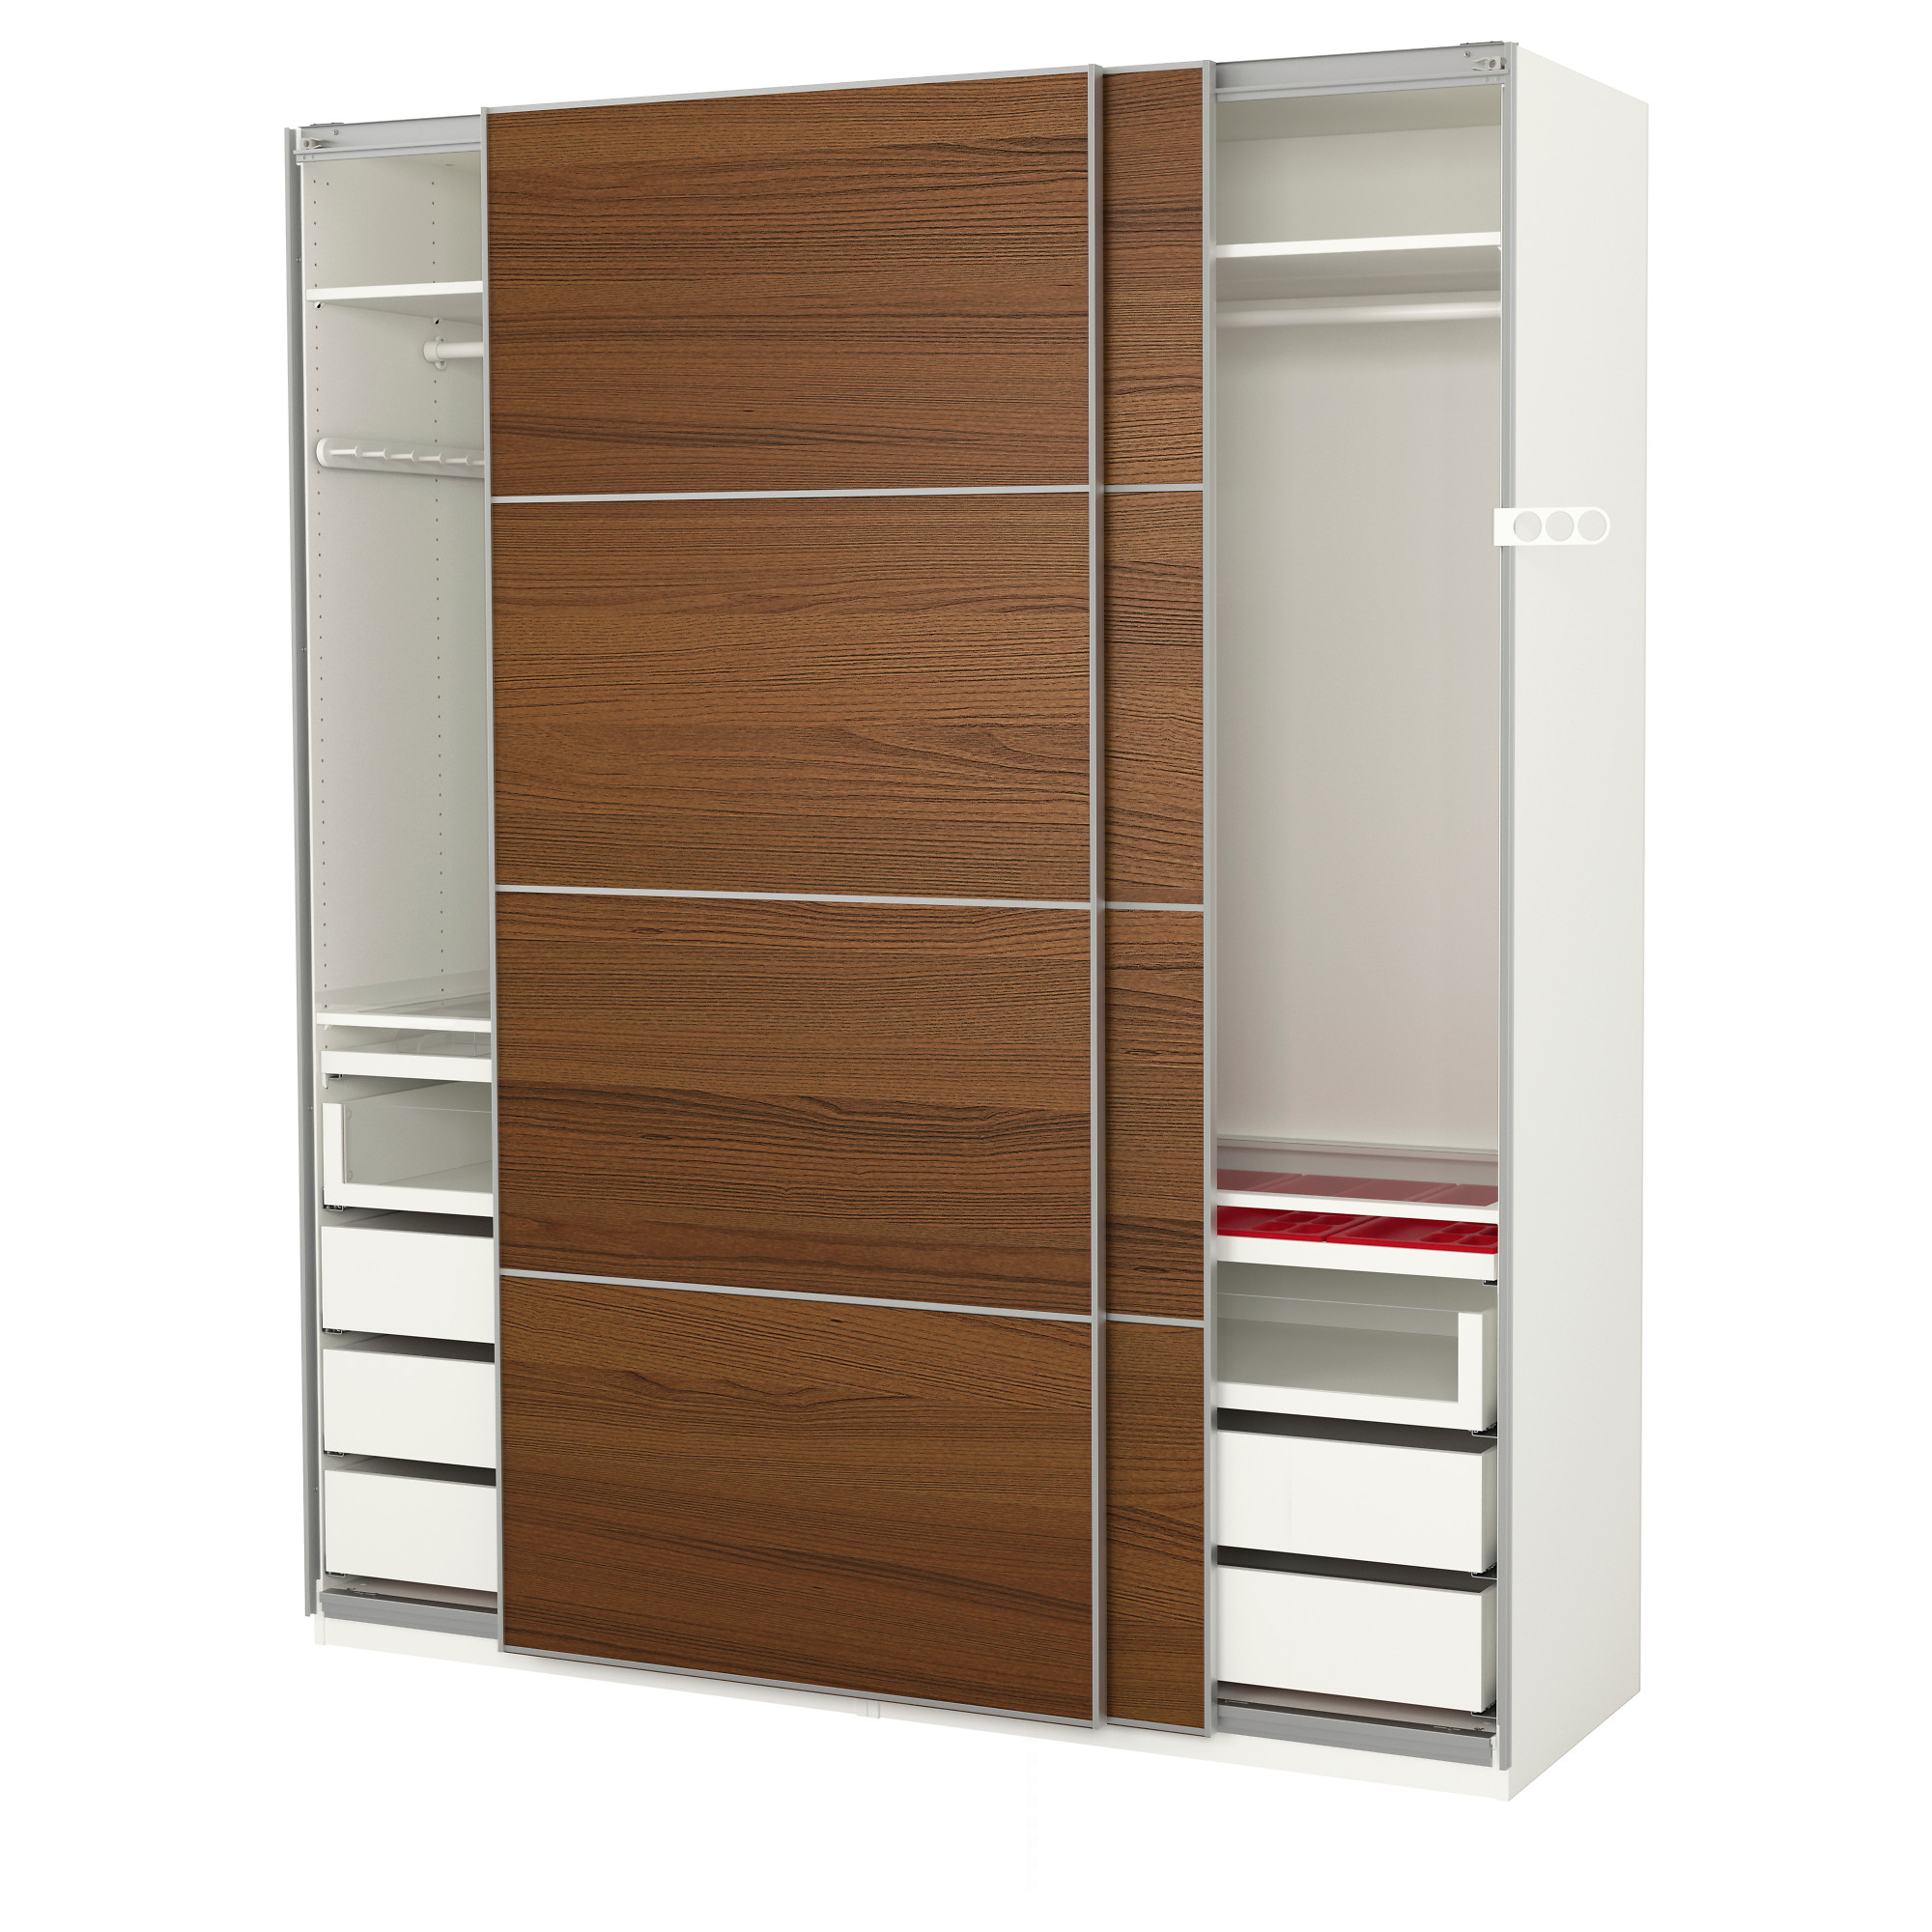 Furniture & Rug Wardrobe Storage Cabinet